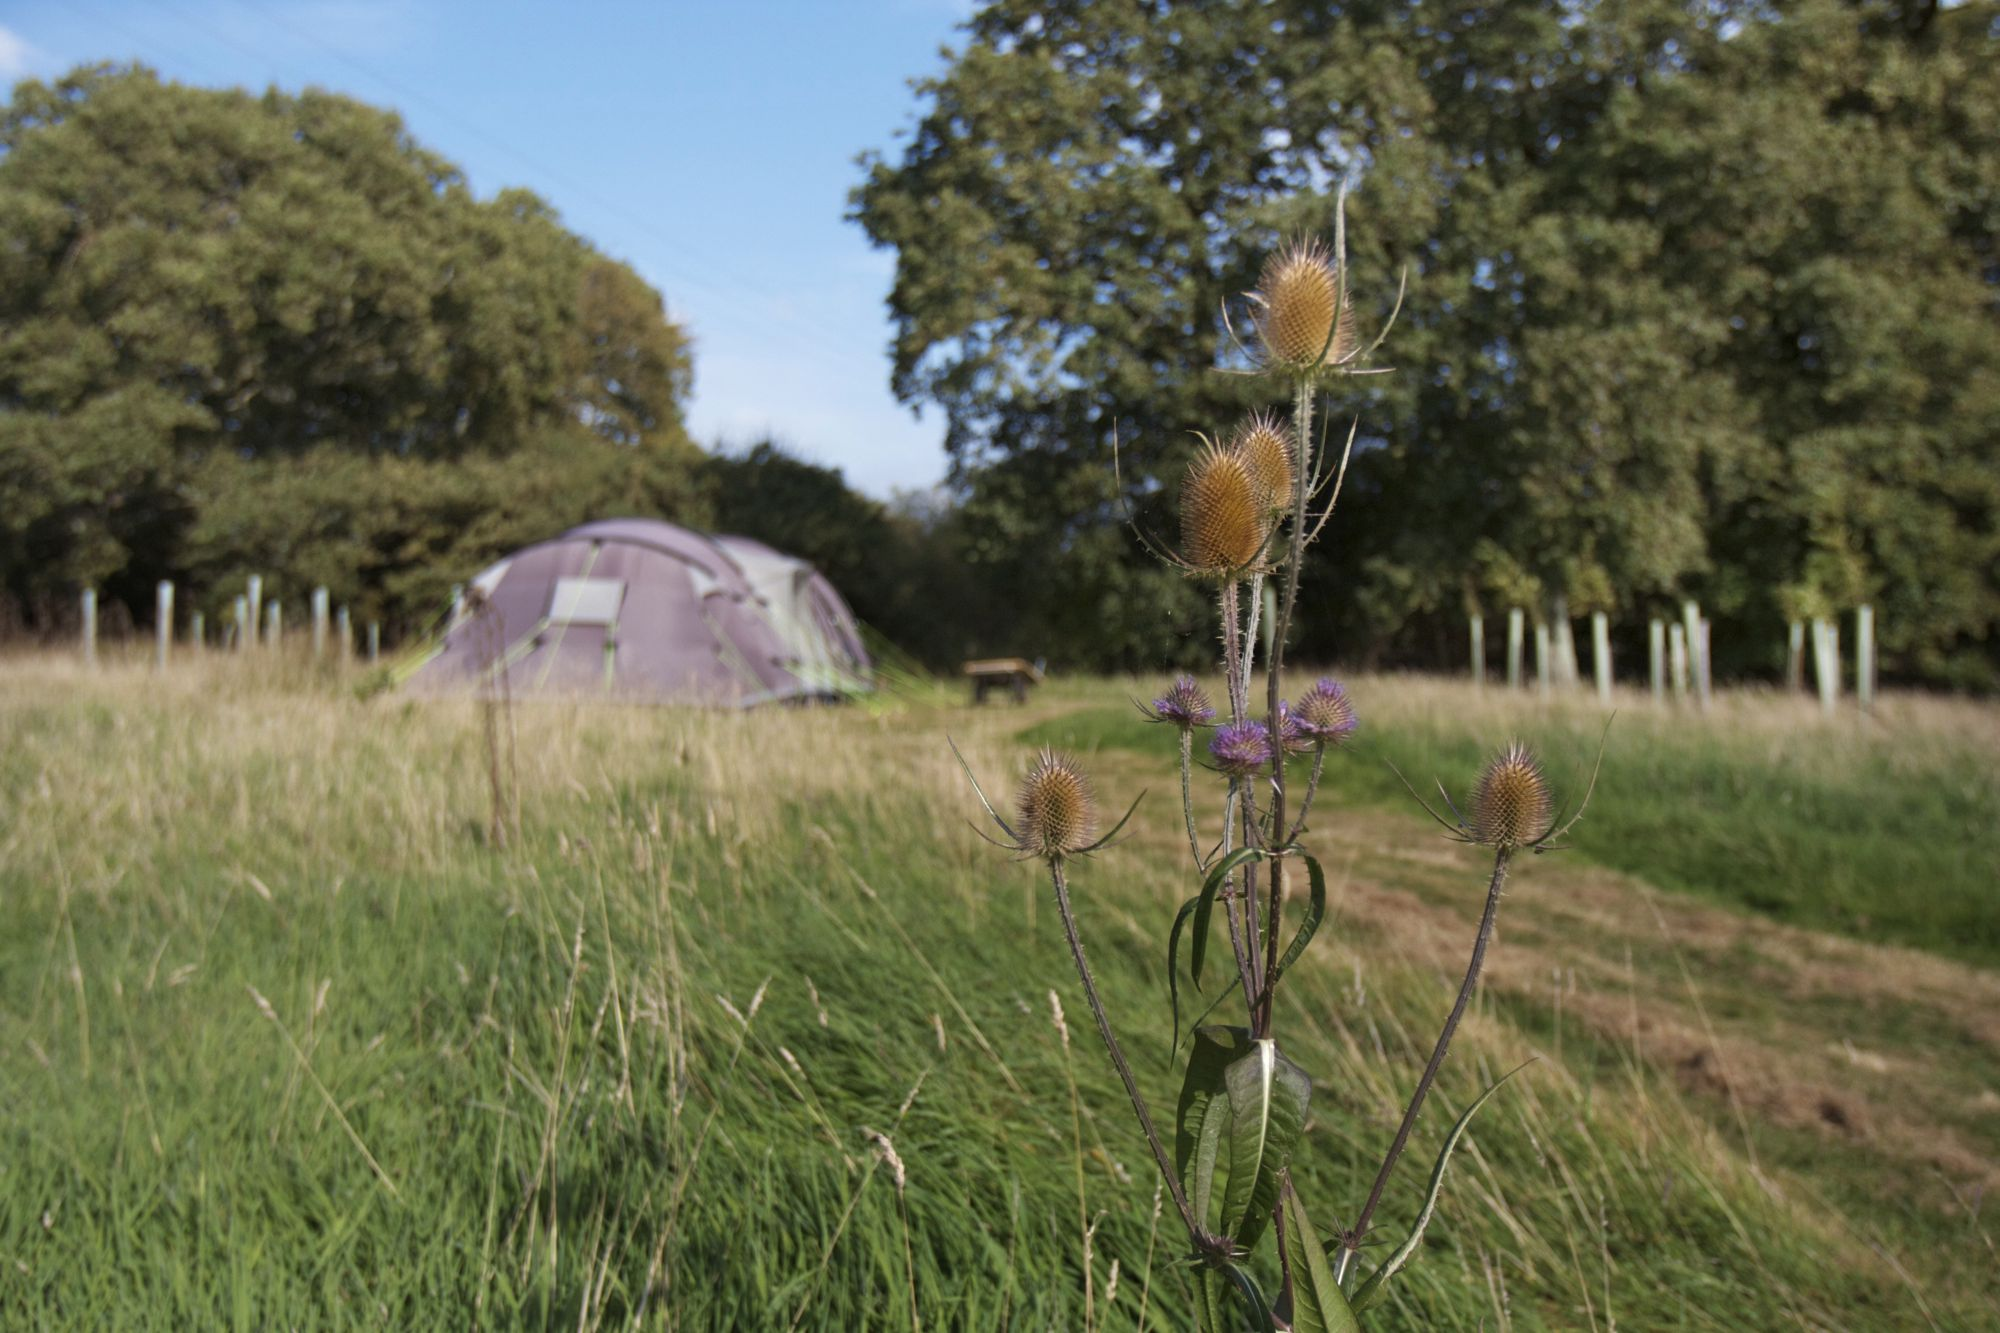 Camping with children - family friendly holidays